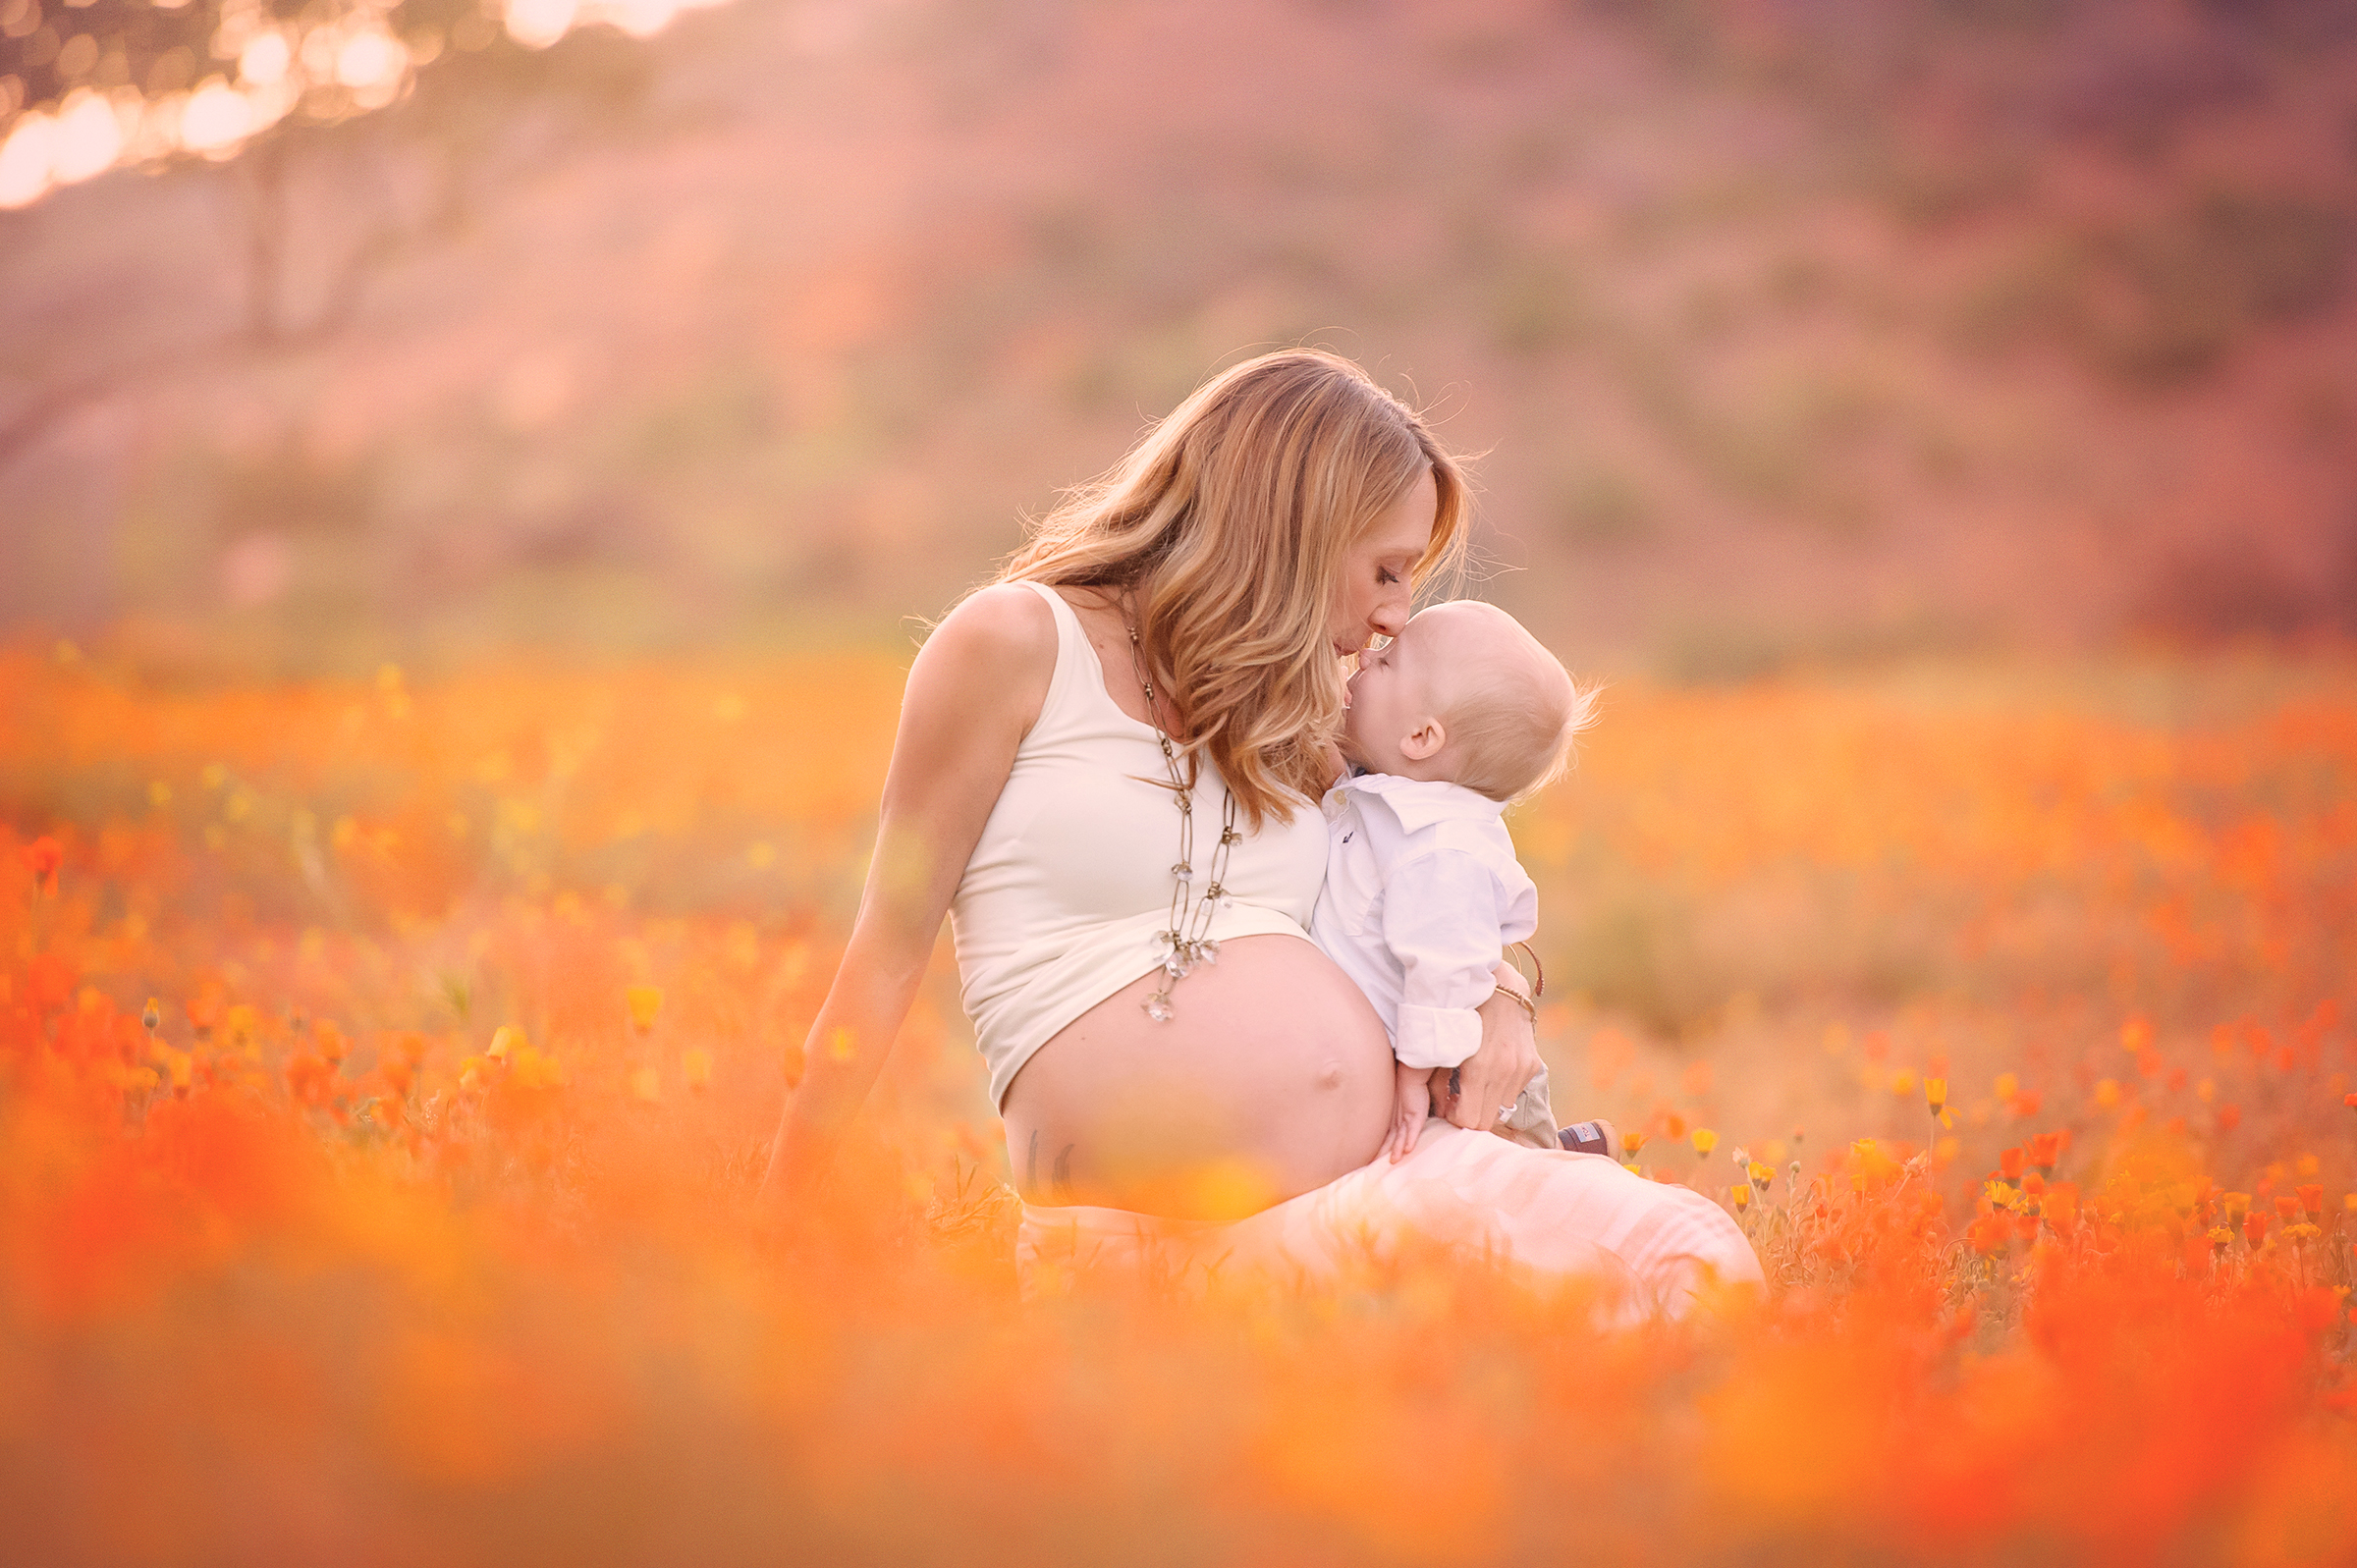 Pregnancy photos in orange flower field in San Diego, CA